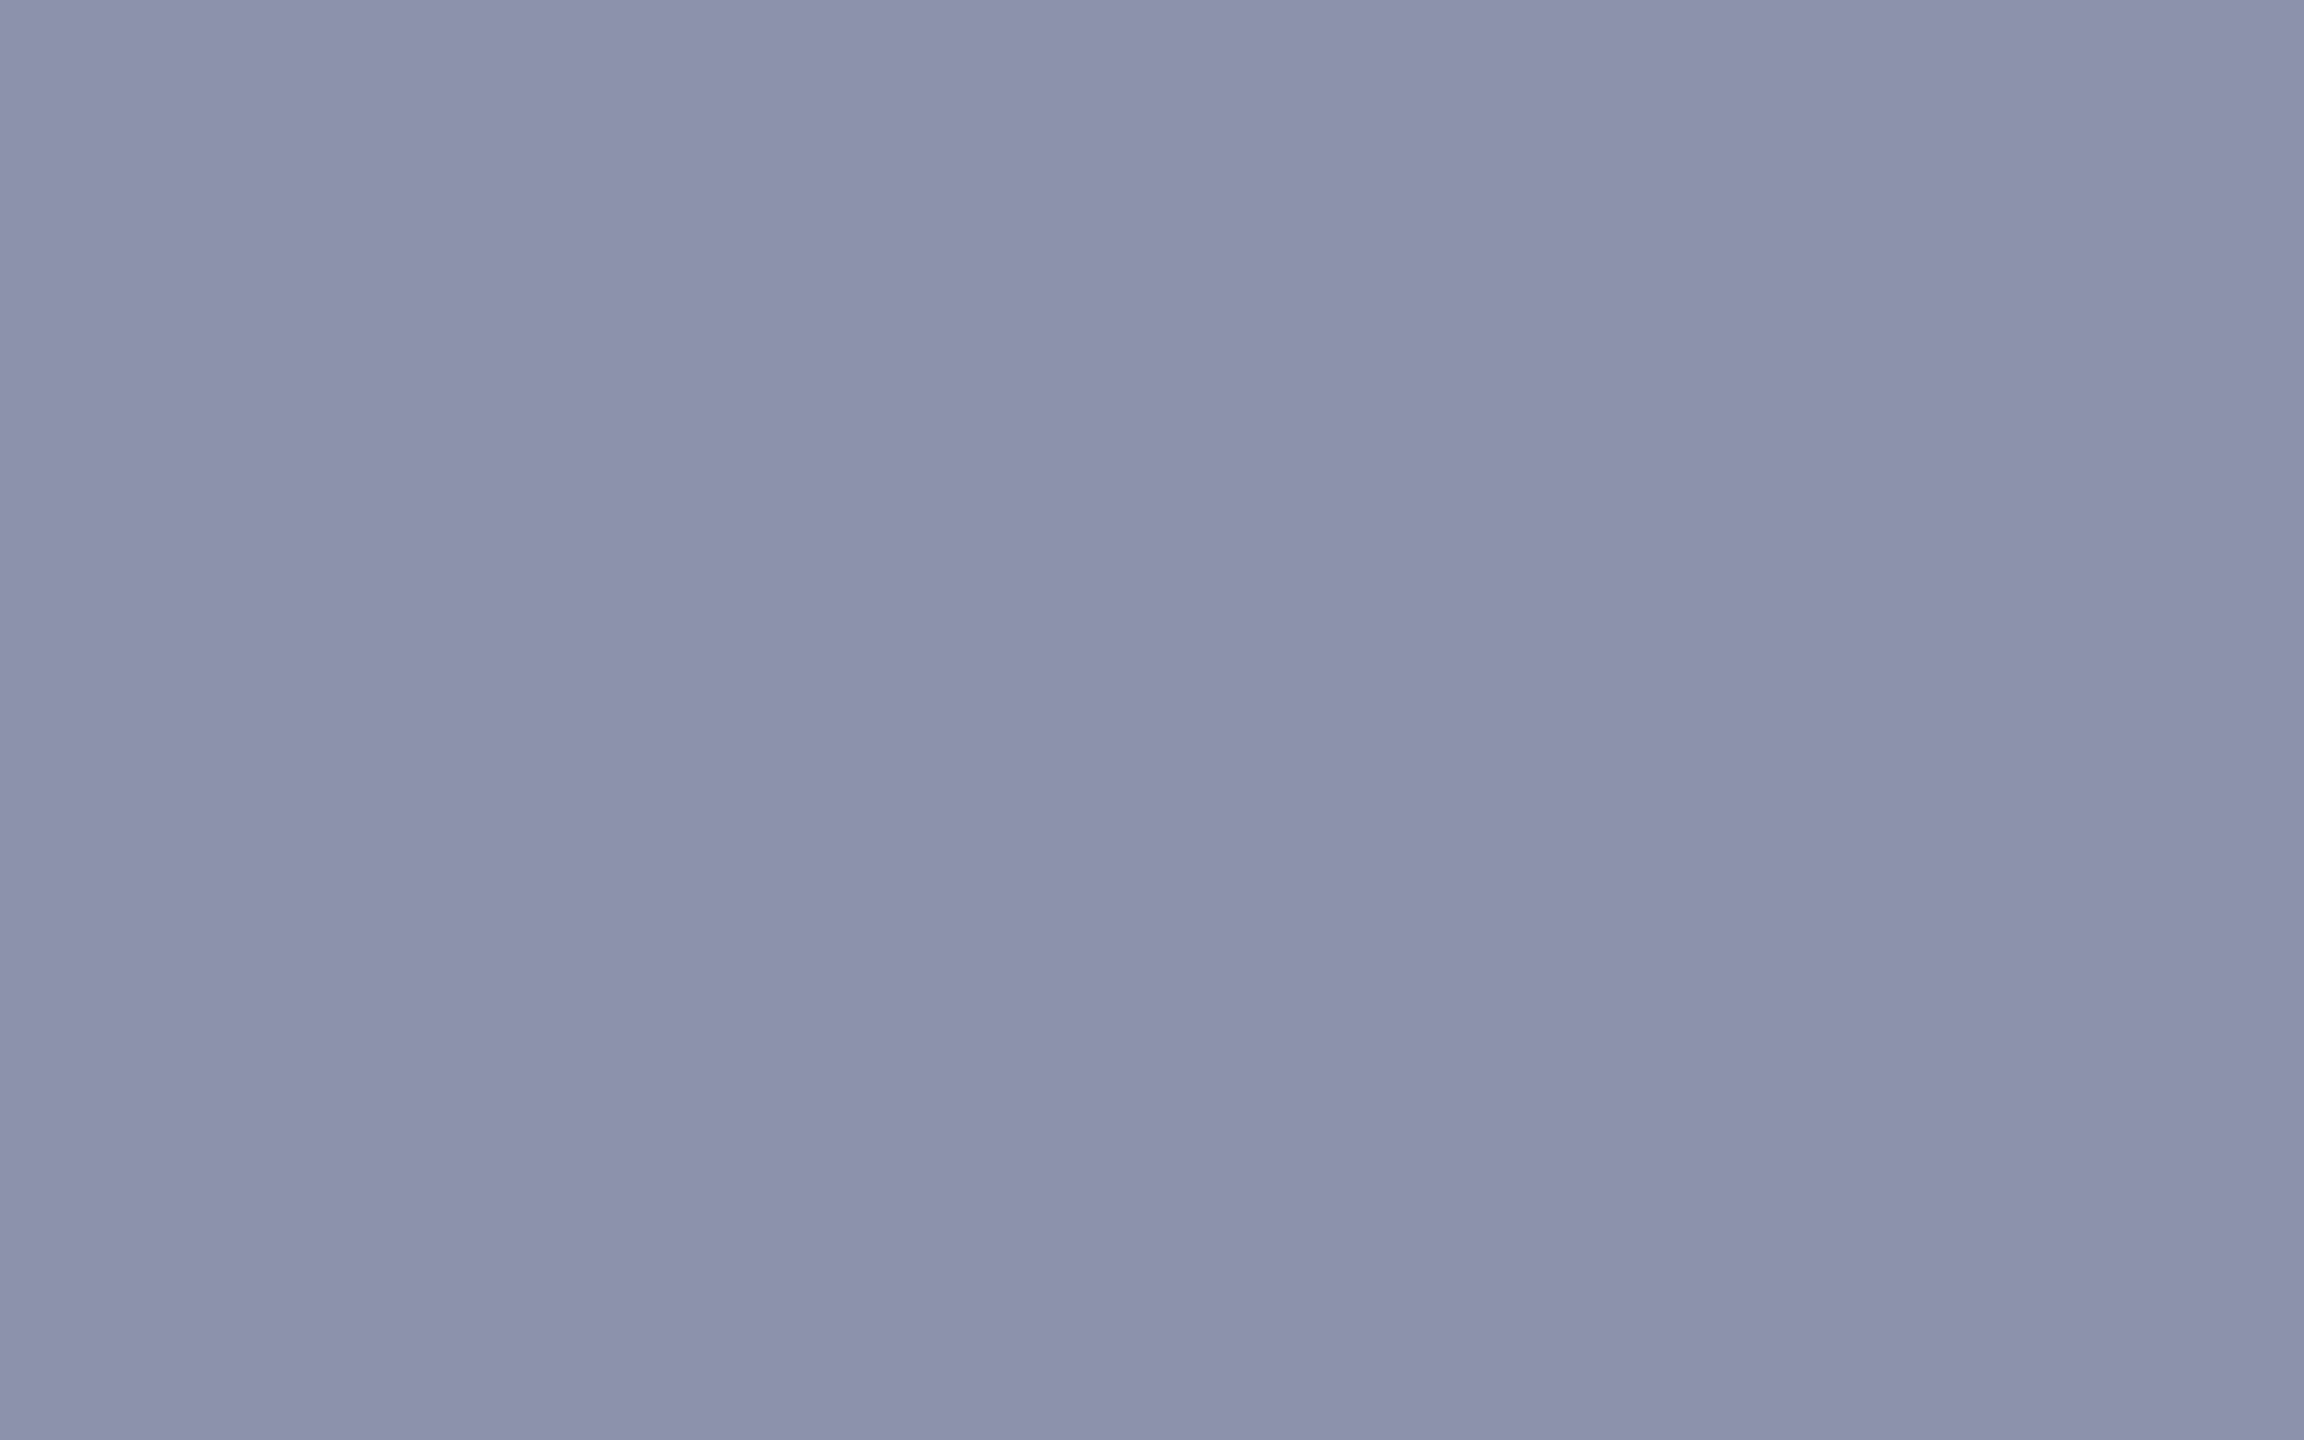 2304x1440 Gray-blue Solid Color Background